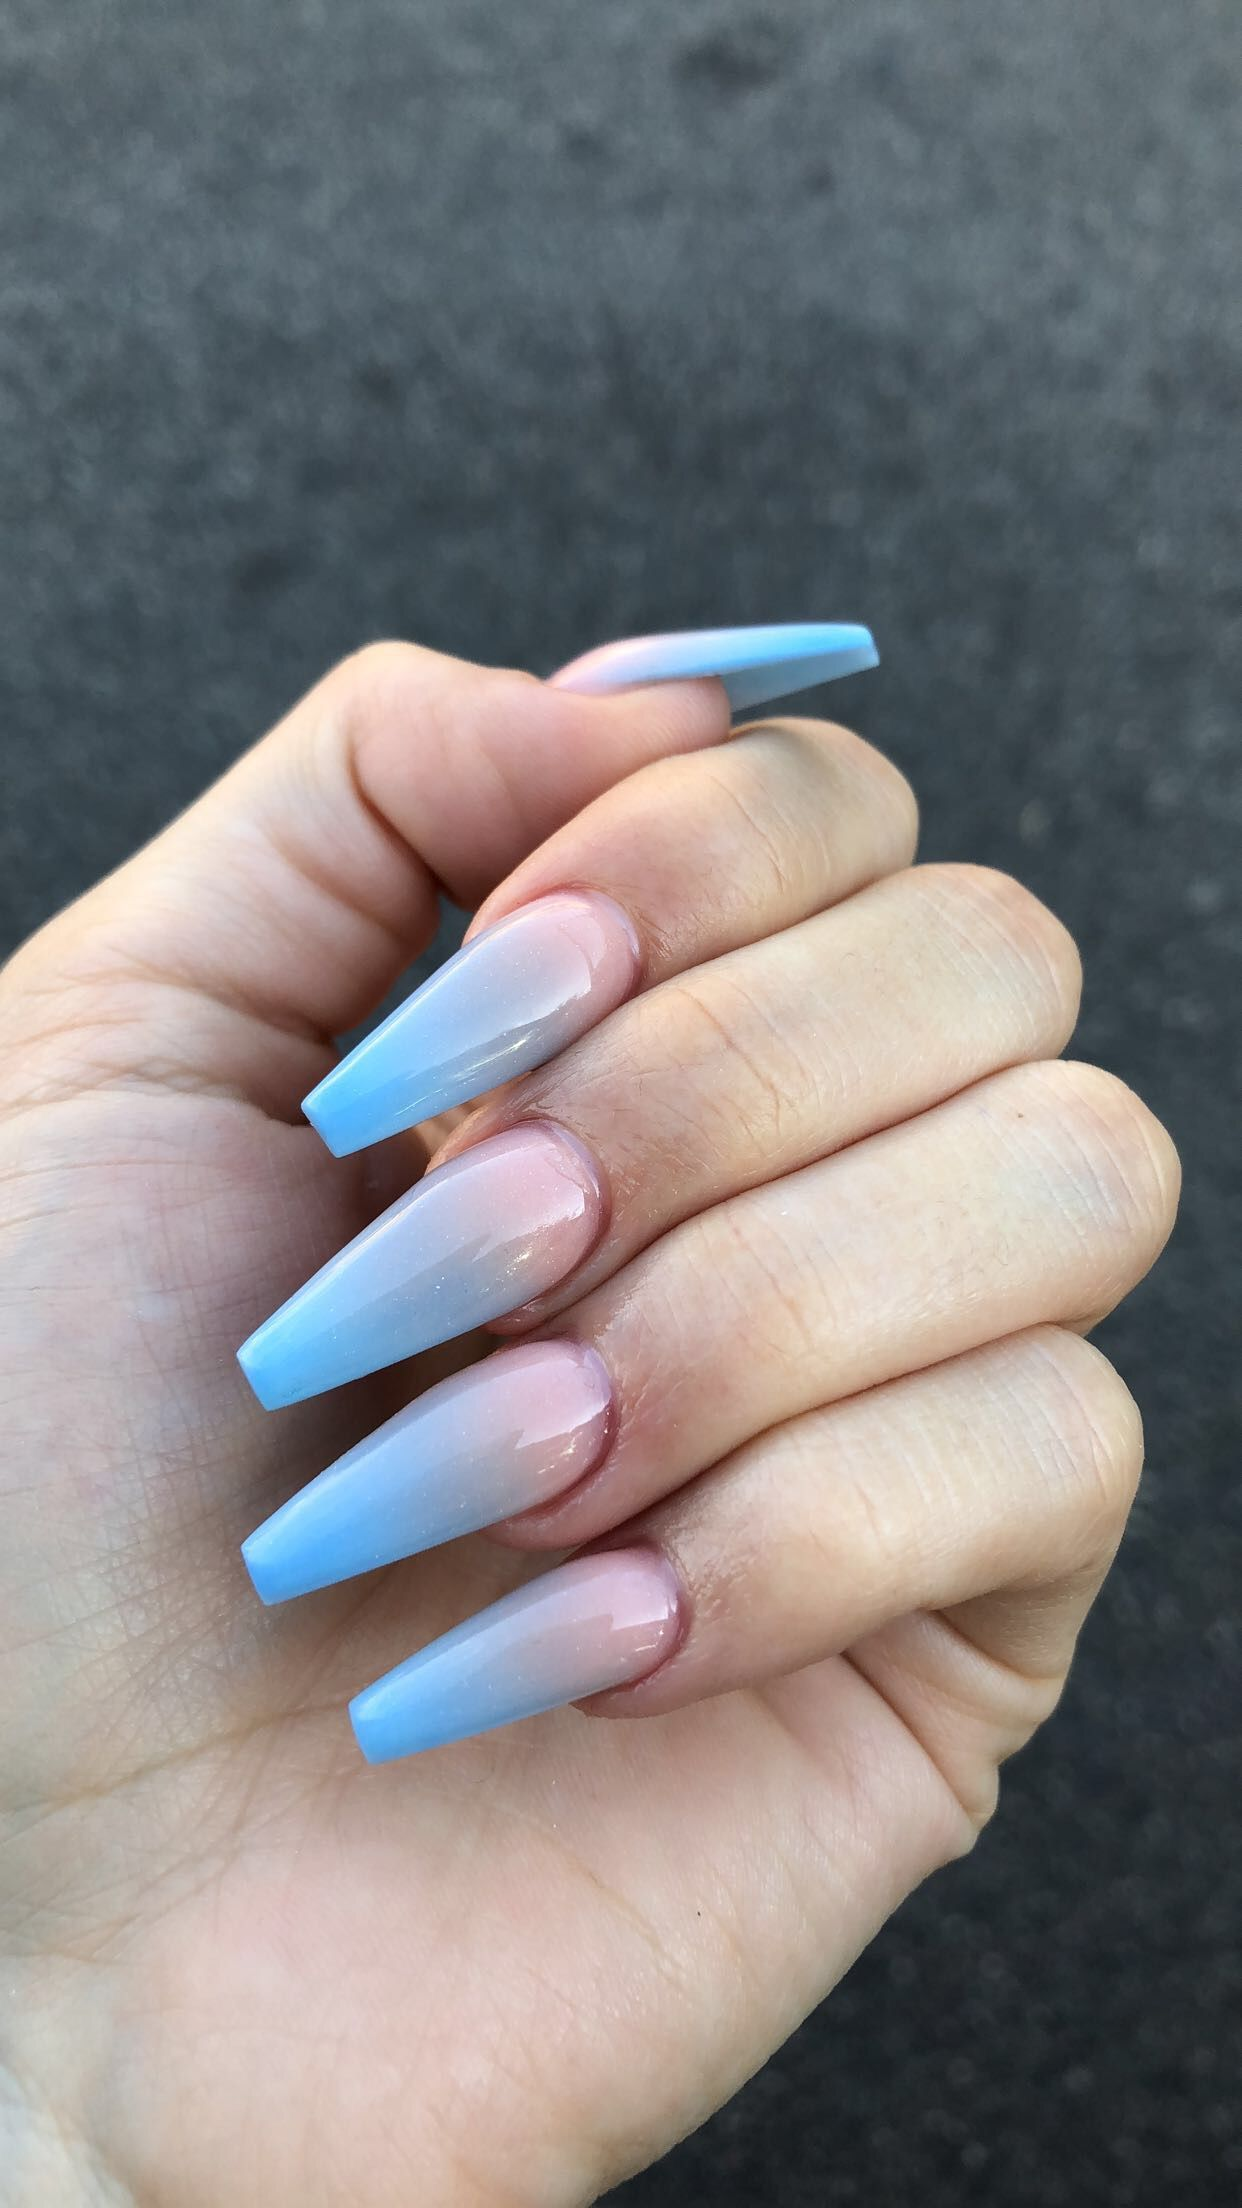 Follow Taiawoodard For More Tips On Skin Care Outfit Insp Nail Insp And Much More Blue Ombre Nails Ombre Acrylic Nails Ombre Nails